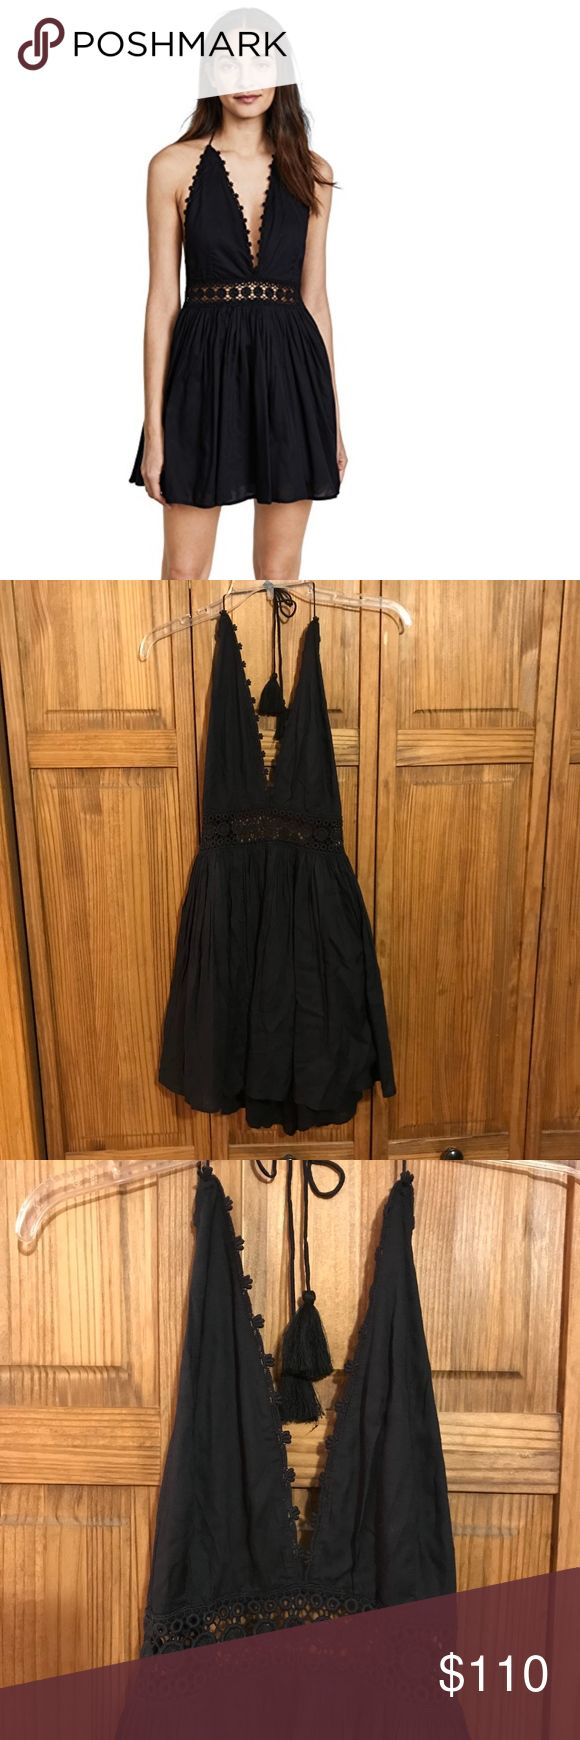 PilyQ Celeste Dress  NWOT PilyQ Celeste Dress  NWOT. Perfect condition! Size: XS/S Make an offer!  Details: -Length: 36.5in / 93cm, from shoulderDETAILS -Fabric: Crepe -Tiered skirt -Lace trim at bust -Tie at neckline -Lined -Shell: 100% rayon -Lining: 100% cotton Pilyq Dresses